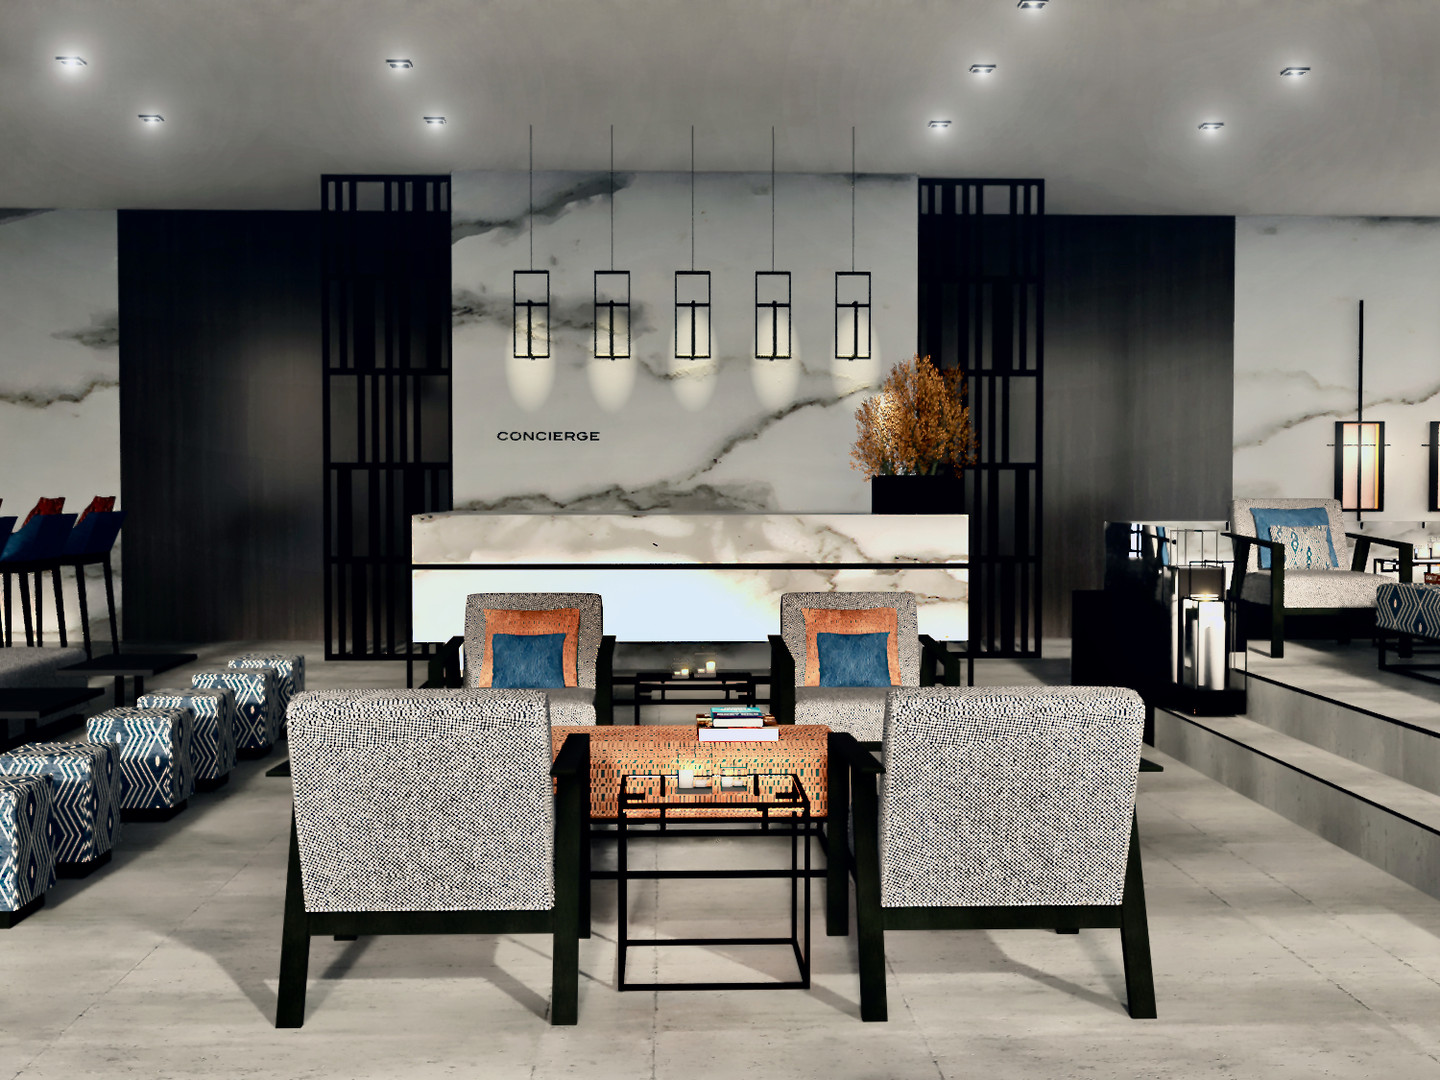 Hotel and Restaurant Interior Designers Jersey, Channel Islands.jpe